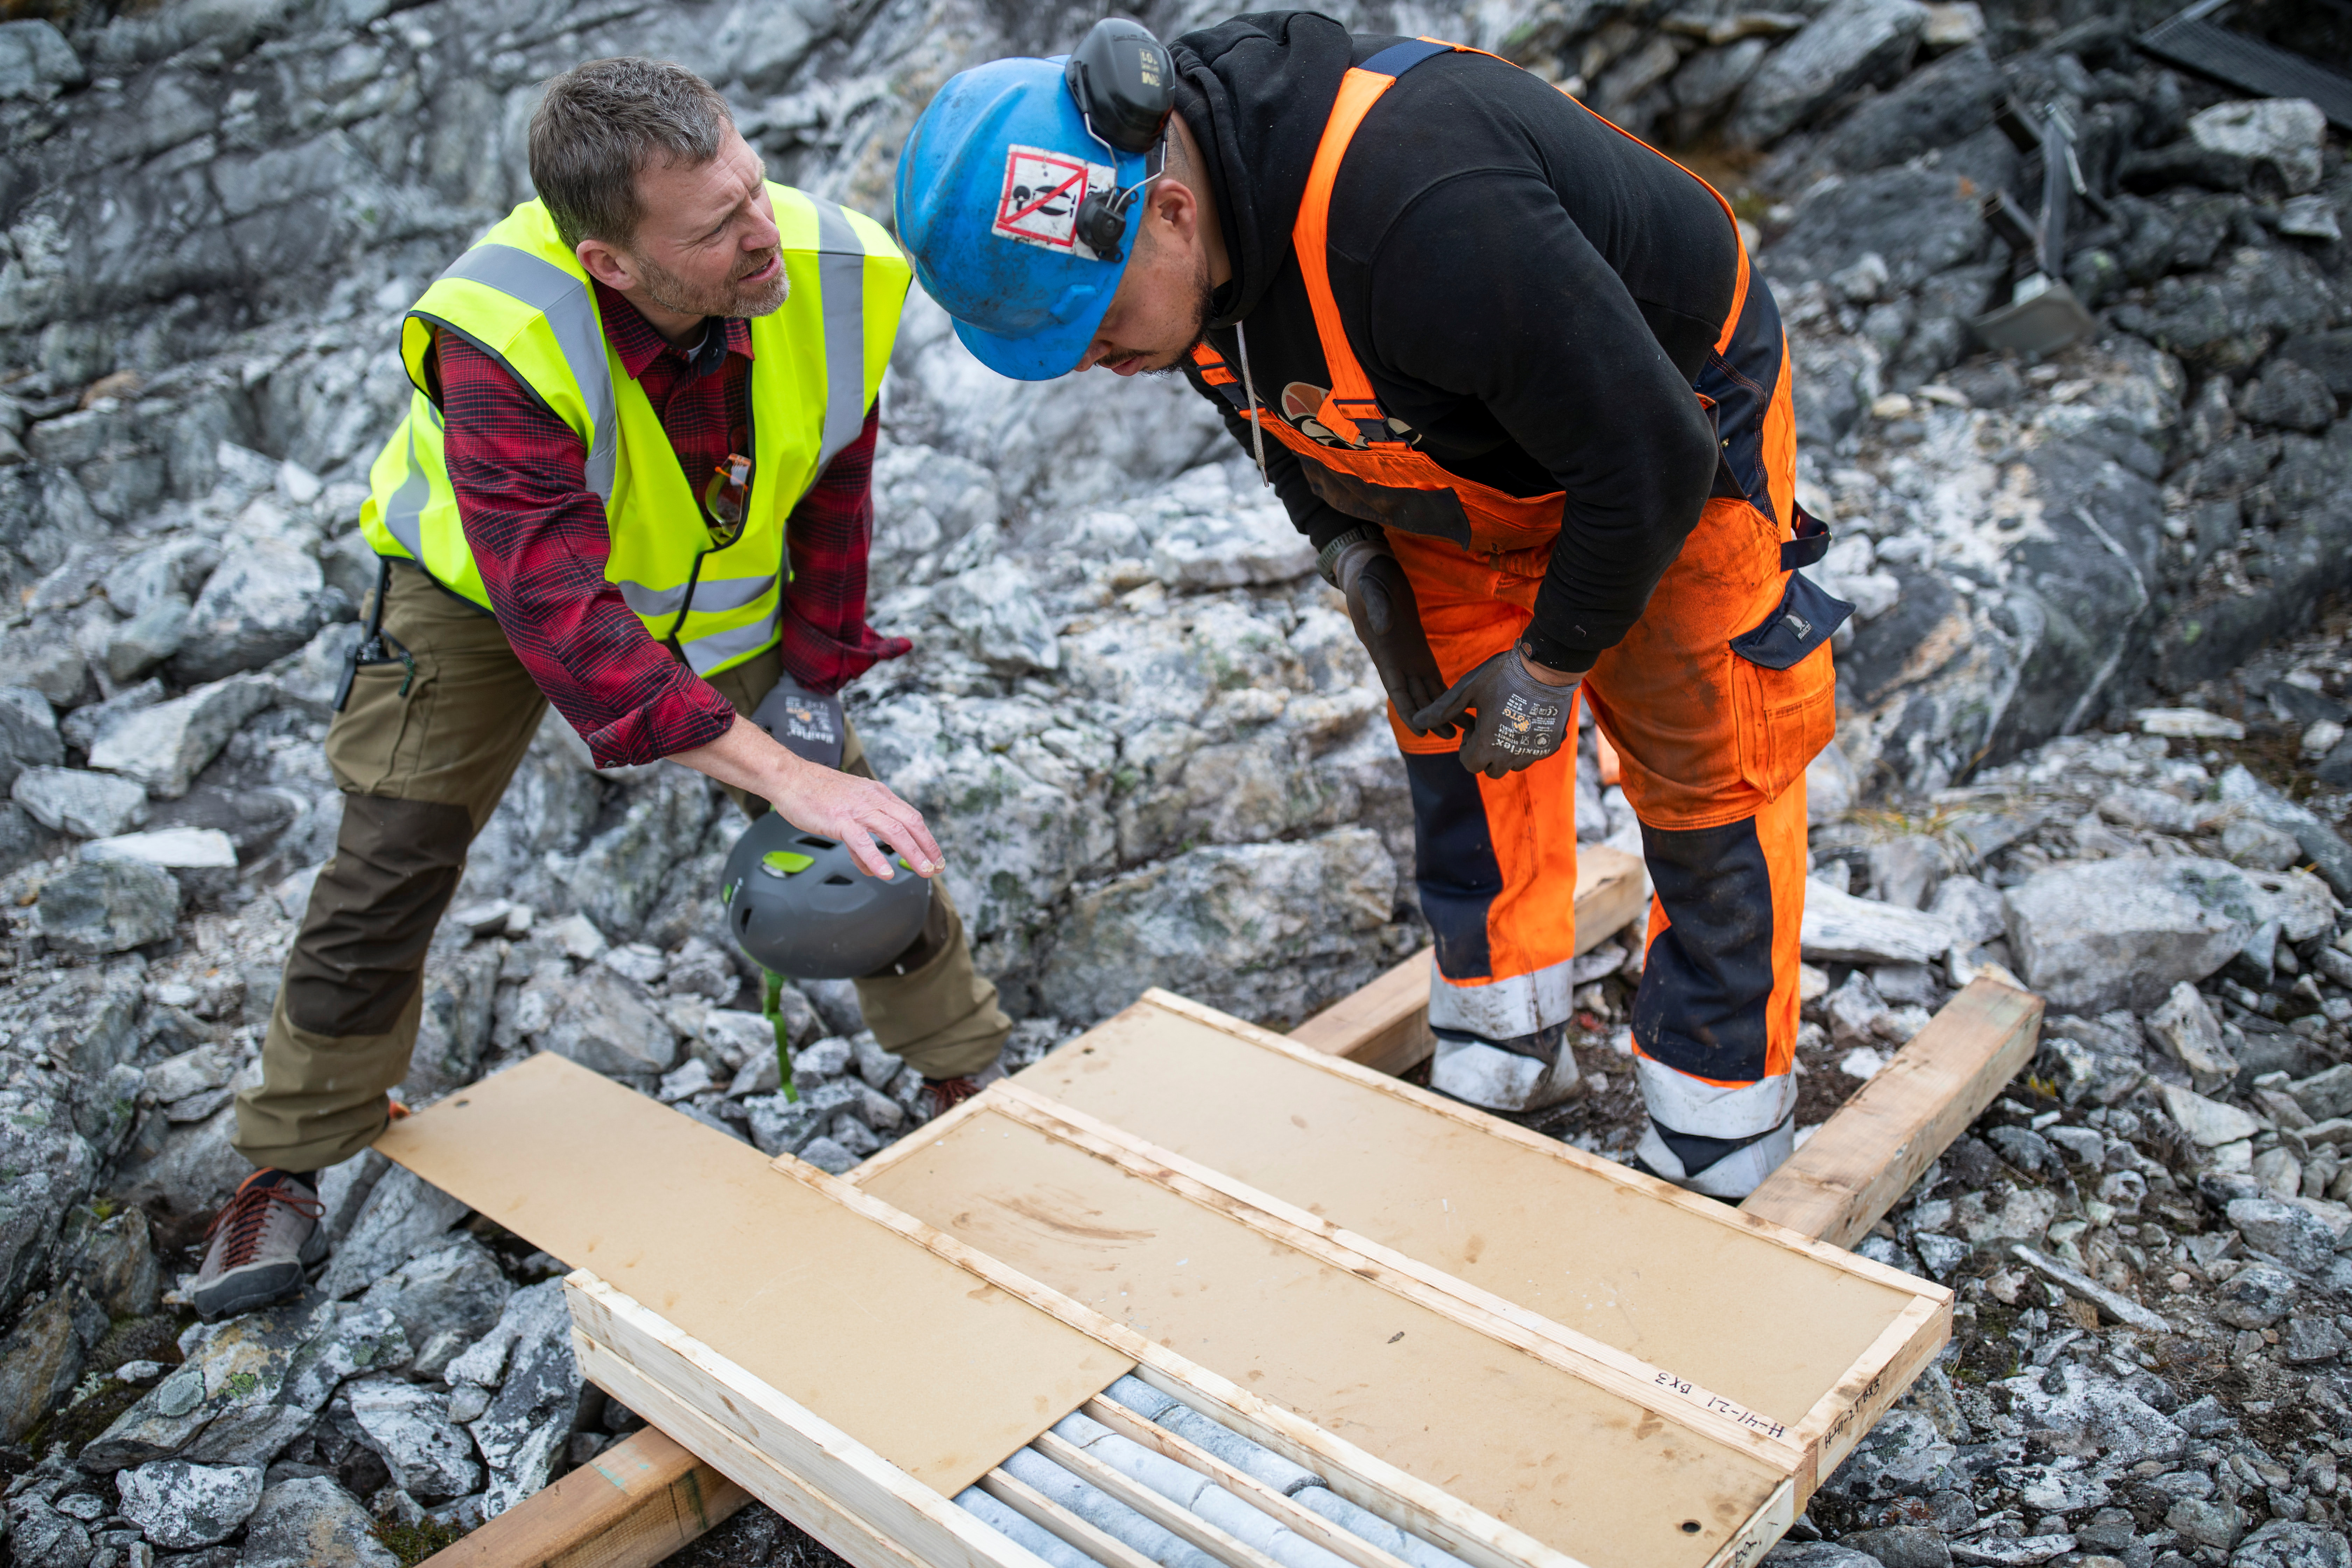 Geologist Anders Norby-Lie of the company Greenland Anorthosite Mining checks drilling cores at an exploration site of an anorthosite deposit close to the Qeqertarsuatsiaat fjord, Greenland, September 11, 2021.  REUTERS/Hannibal Hanschke